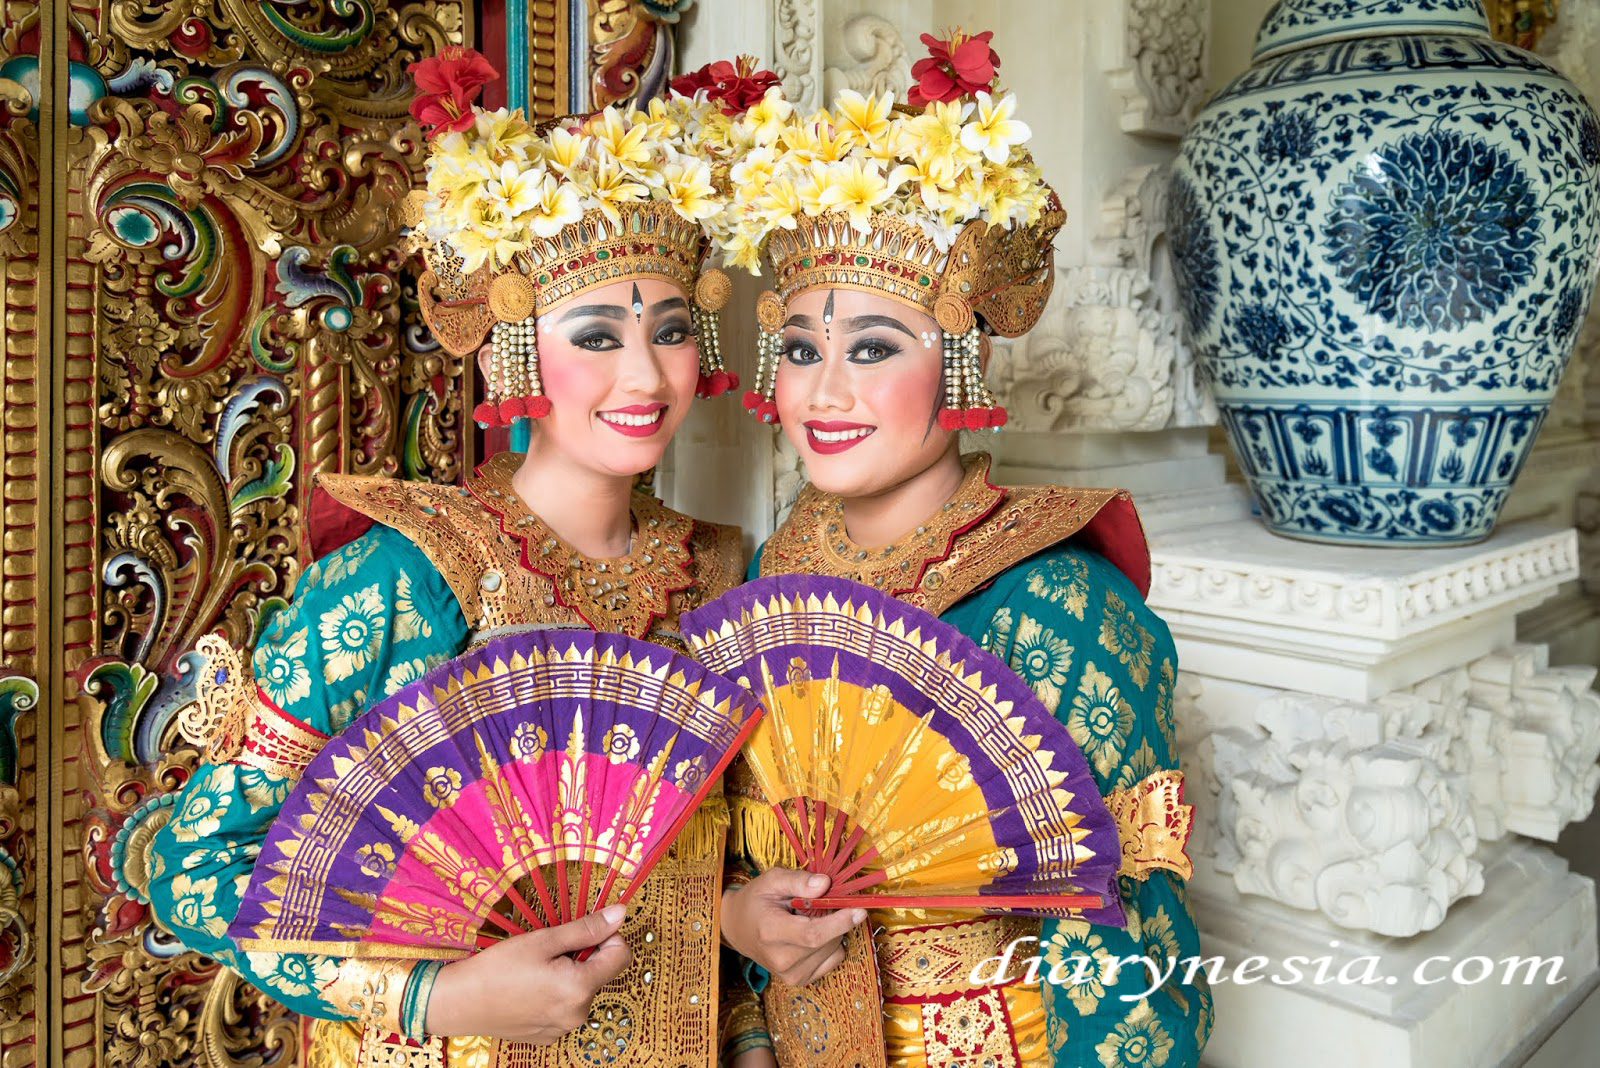 all about traditional balinese dance, how to see traditional balinese dancing, bali tourism, diarynesia